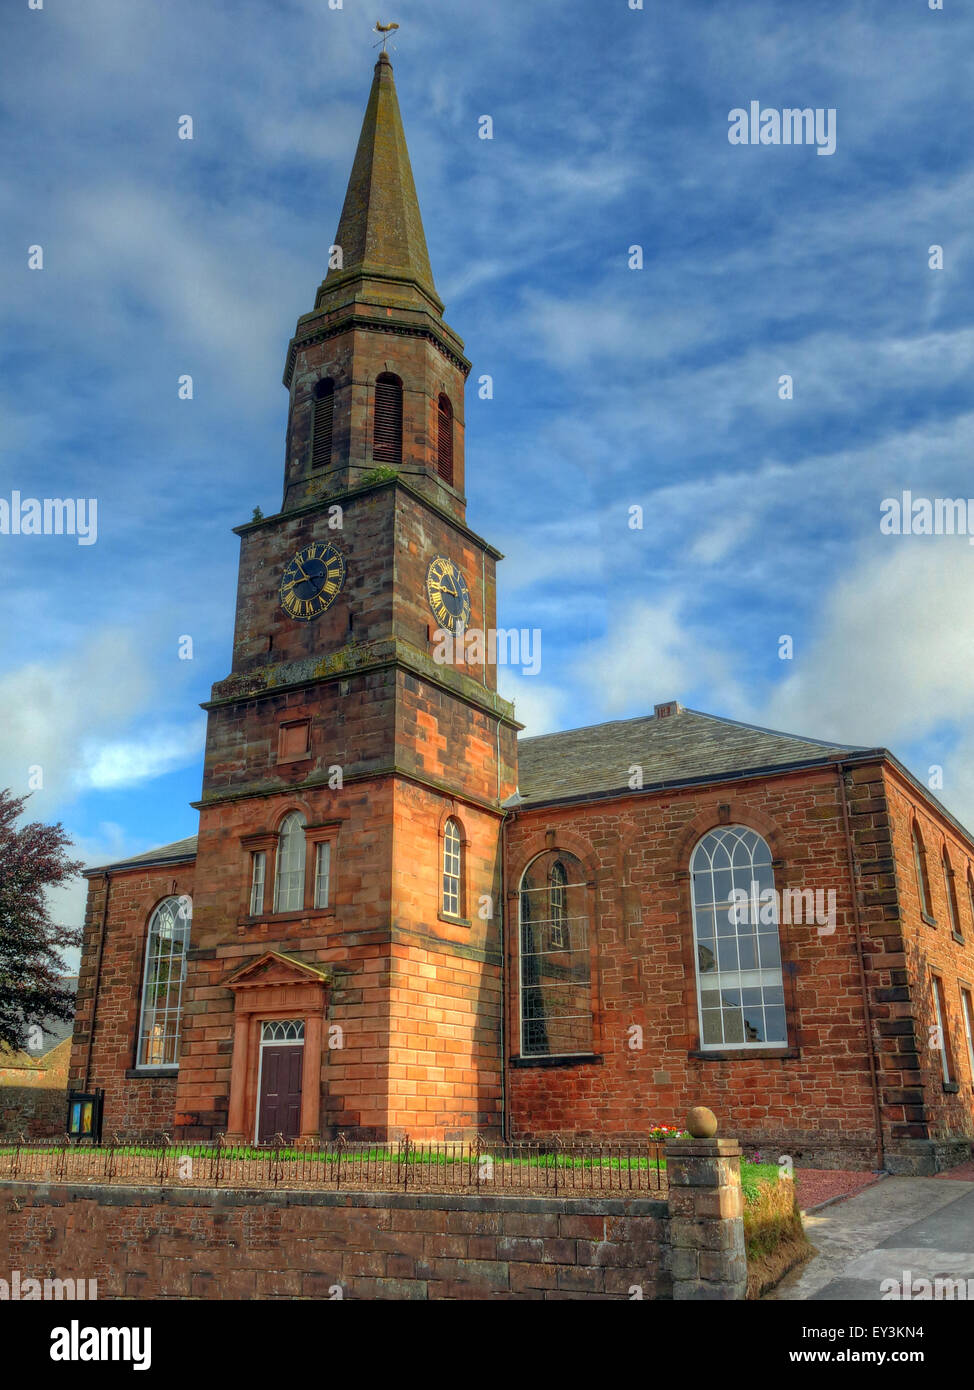 Annan,Scottish,Churches,religion,Anglican,Anglicans,tower,clock,clockface,history,historic,spire,summer,evening,morning,iconic,annandale,britain,clock,dumfriesshire,great,kingdom,old,parish,church,annan,red,sandstone,scotland,scottish,spire,tower,town,Old Parish Church,of Scotland,GoTonySmith,AD,573,–,St,Mungo,passes,through,Annandale,AD,686,–,Abbot,Adamnan,of,Iona,at,Annan,Waterfoot,AD,1148,–,St,Malachi,Bishop of Clairvaux,visits,Bruce,at,Annan.,AD,1171,–,Church,of,Annan,built,by,Robert,Bruce,near,the,site,of,the,Town,Hall.,AD,1187,–,William,Dean,of,the,Valley,of,Annan,witnesses,the,charter.,AD,1196,–,Incumbent,of,Annan,Ministers,in,plague.,AD,1223,–,Church,transferred,to,See,of,Glasgow,from,Gwsborough.,AD,1265,–,Stipend,increased,by,forty,shillings,Robert,the,rector,collects,a,hundred,shillings.,AD,1213,–,Rector,established,in,Annan,by,the,Dean,of,Glasgow,succeeding,Robert,the,Rector.,AD,1327,–,Robert,Rector,of,Annan.,AD,1335,–,Walter,Rector of Annan,translated,to,Dronnok,(Dornock),AD,1474,–,Gilbert,Maxwell,Rector,of,Annan.,AD,1487,–,William,Turnbull,Rector of An,Buy Pictures of,Buy Images Of